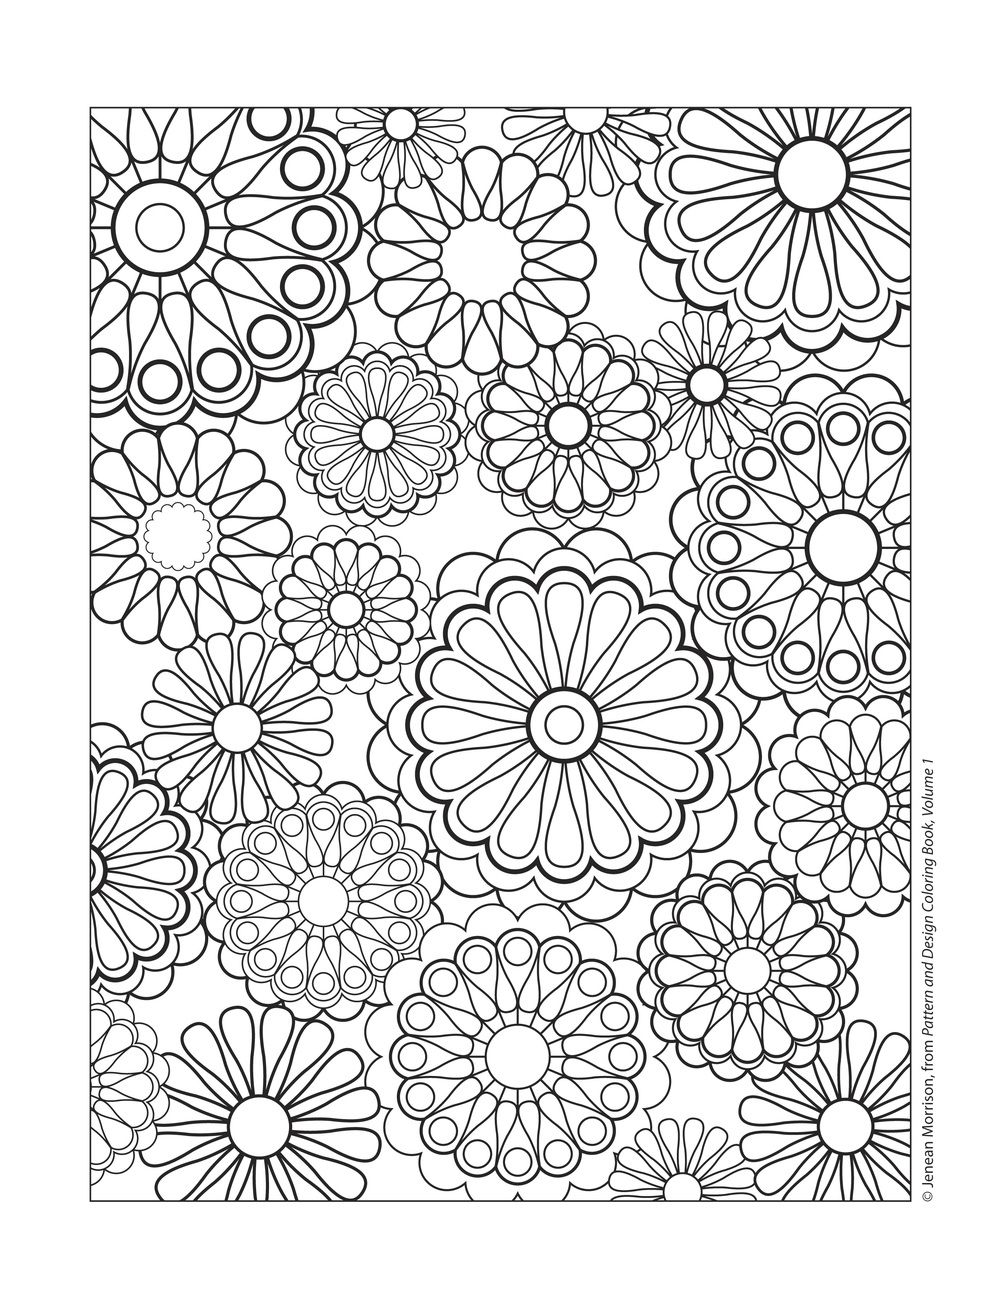 Mandala Coloring Pages Printable Design Coloring Pages For Adults And Older Kids